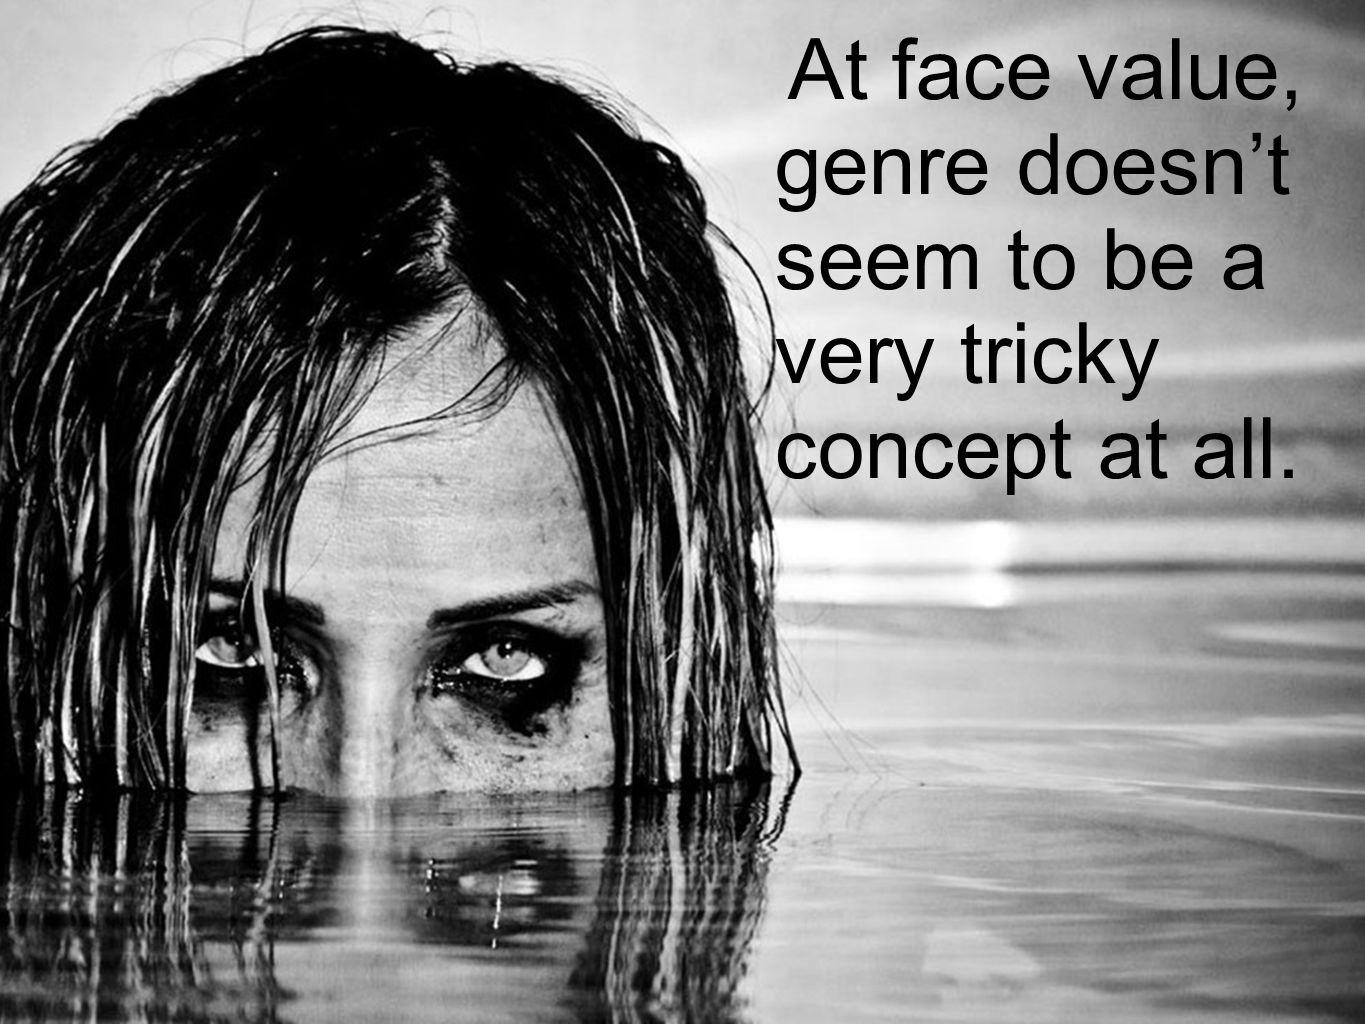 At face value, genre doesn't seem to be a very tricky concept at all.